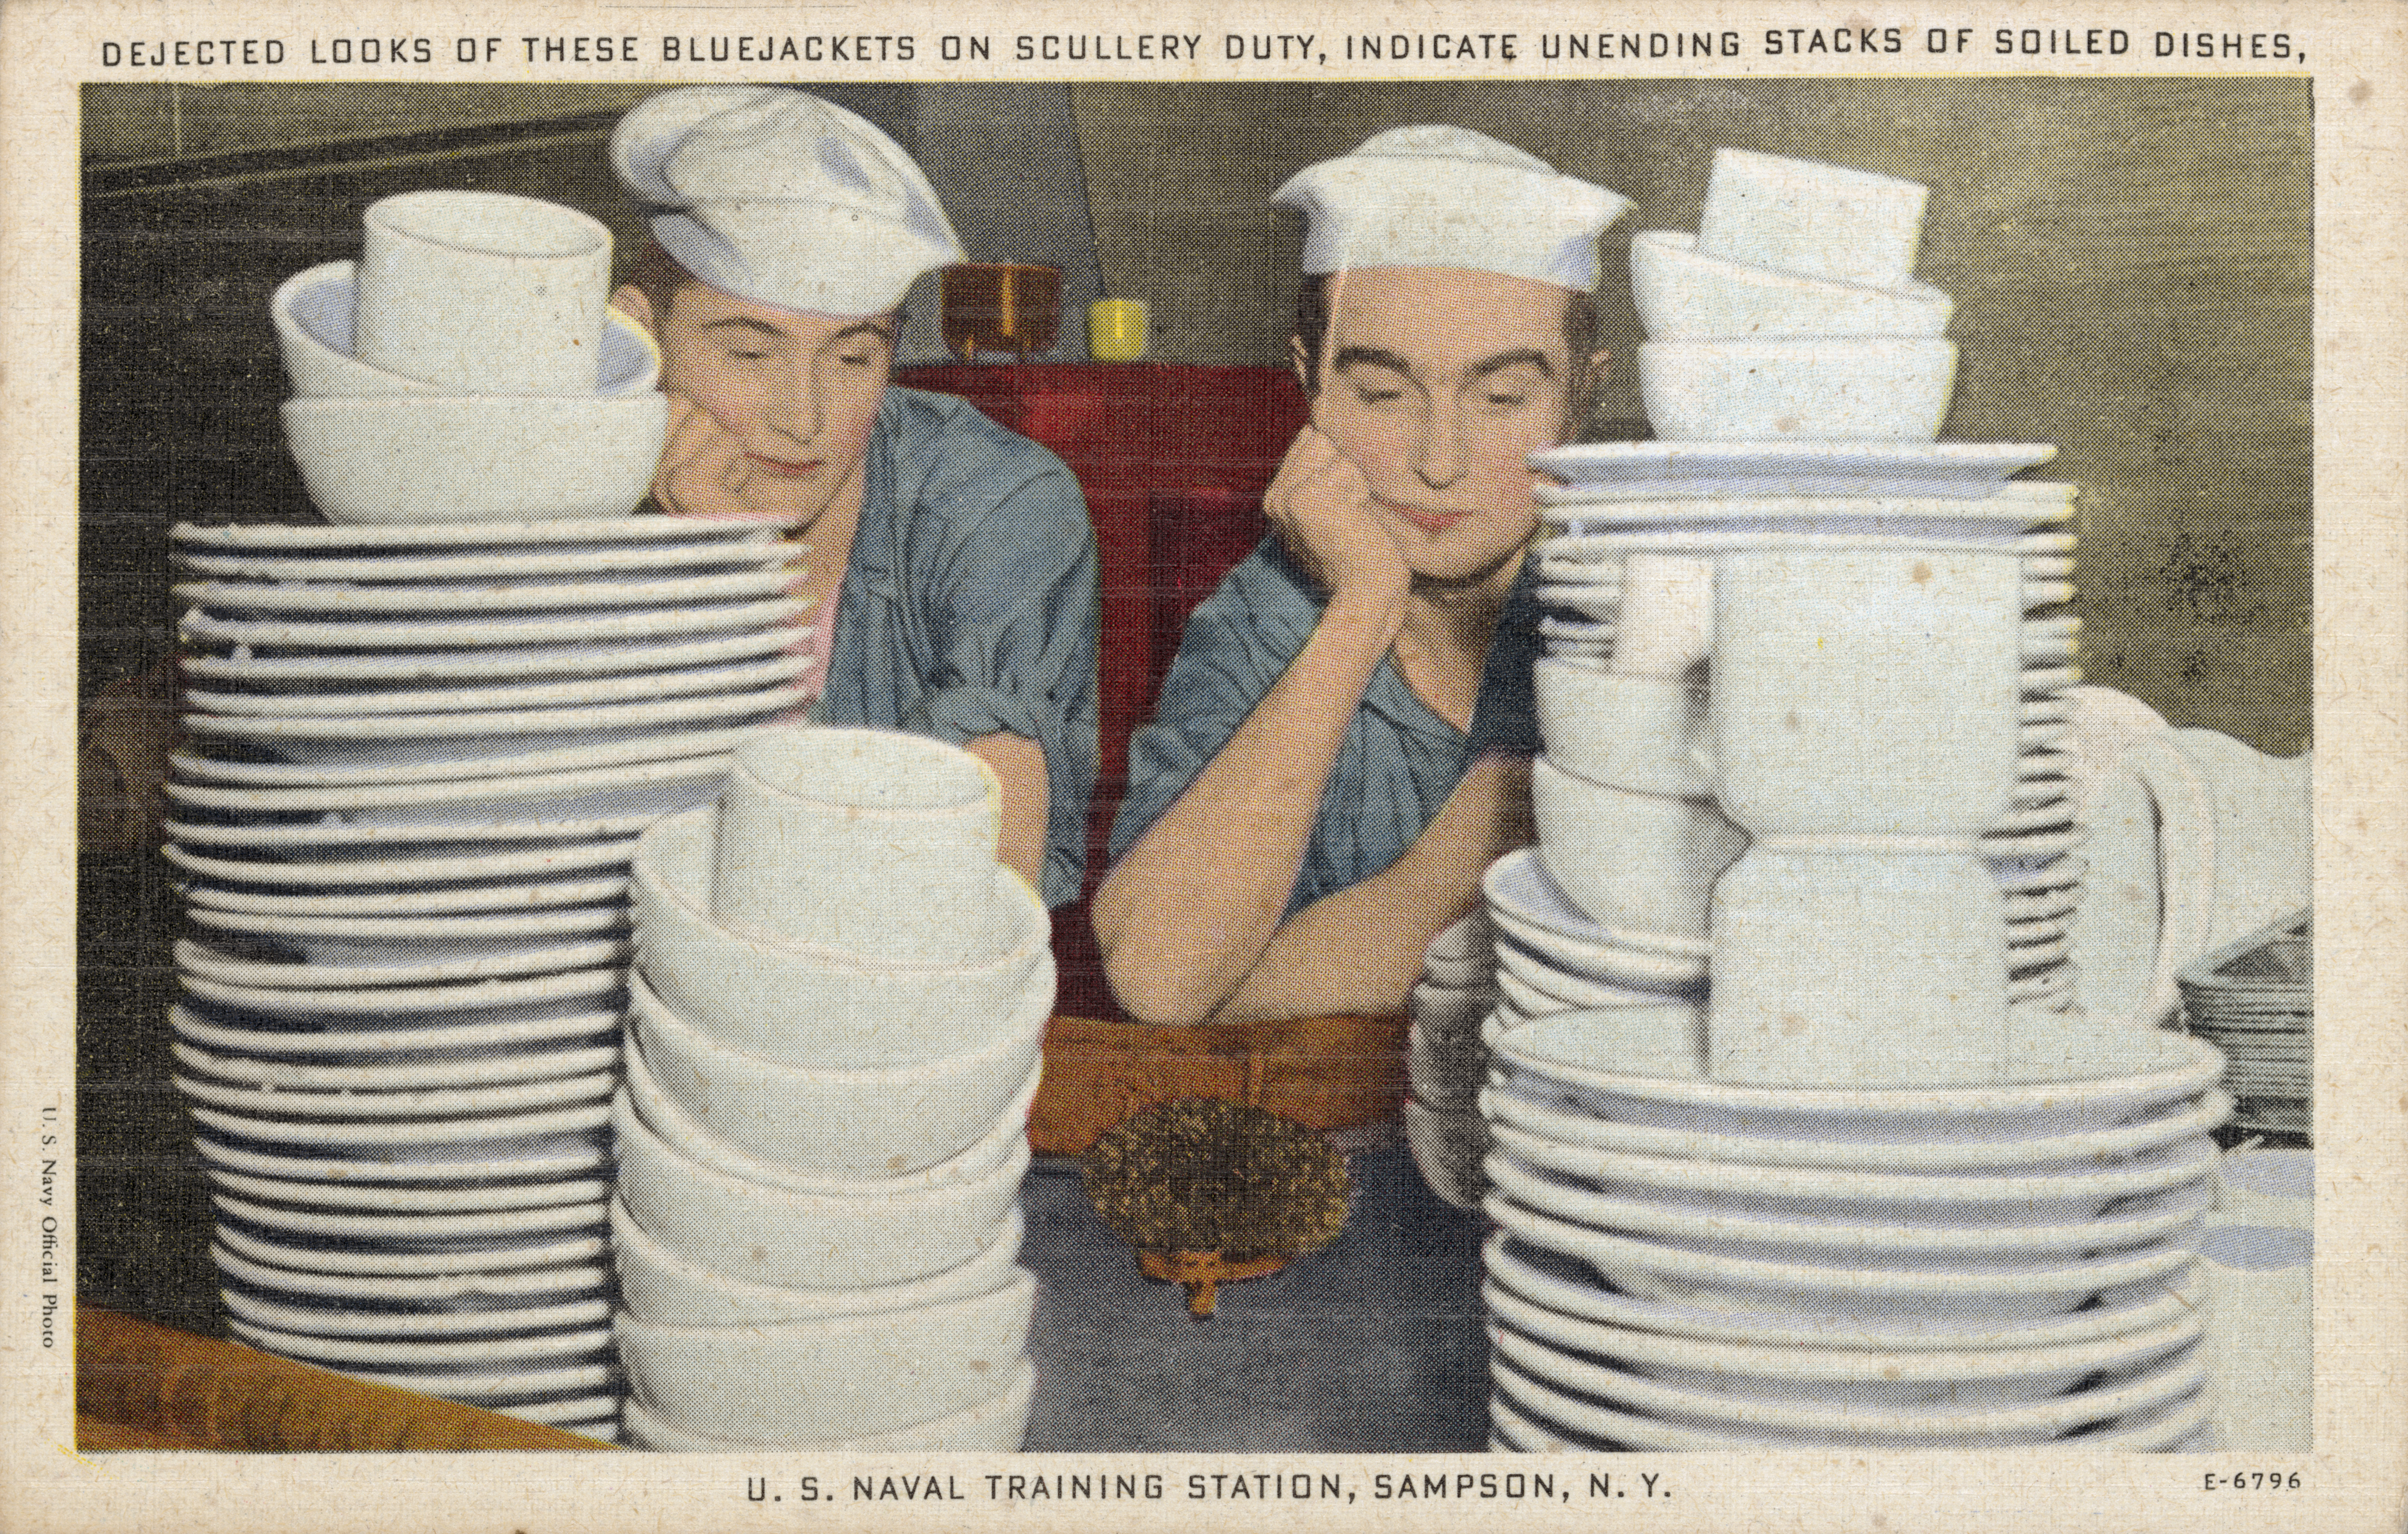 Postcard of Sailors and Stacks of Dishes